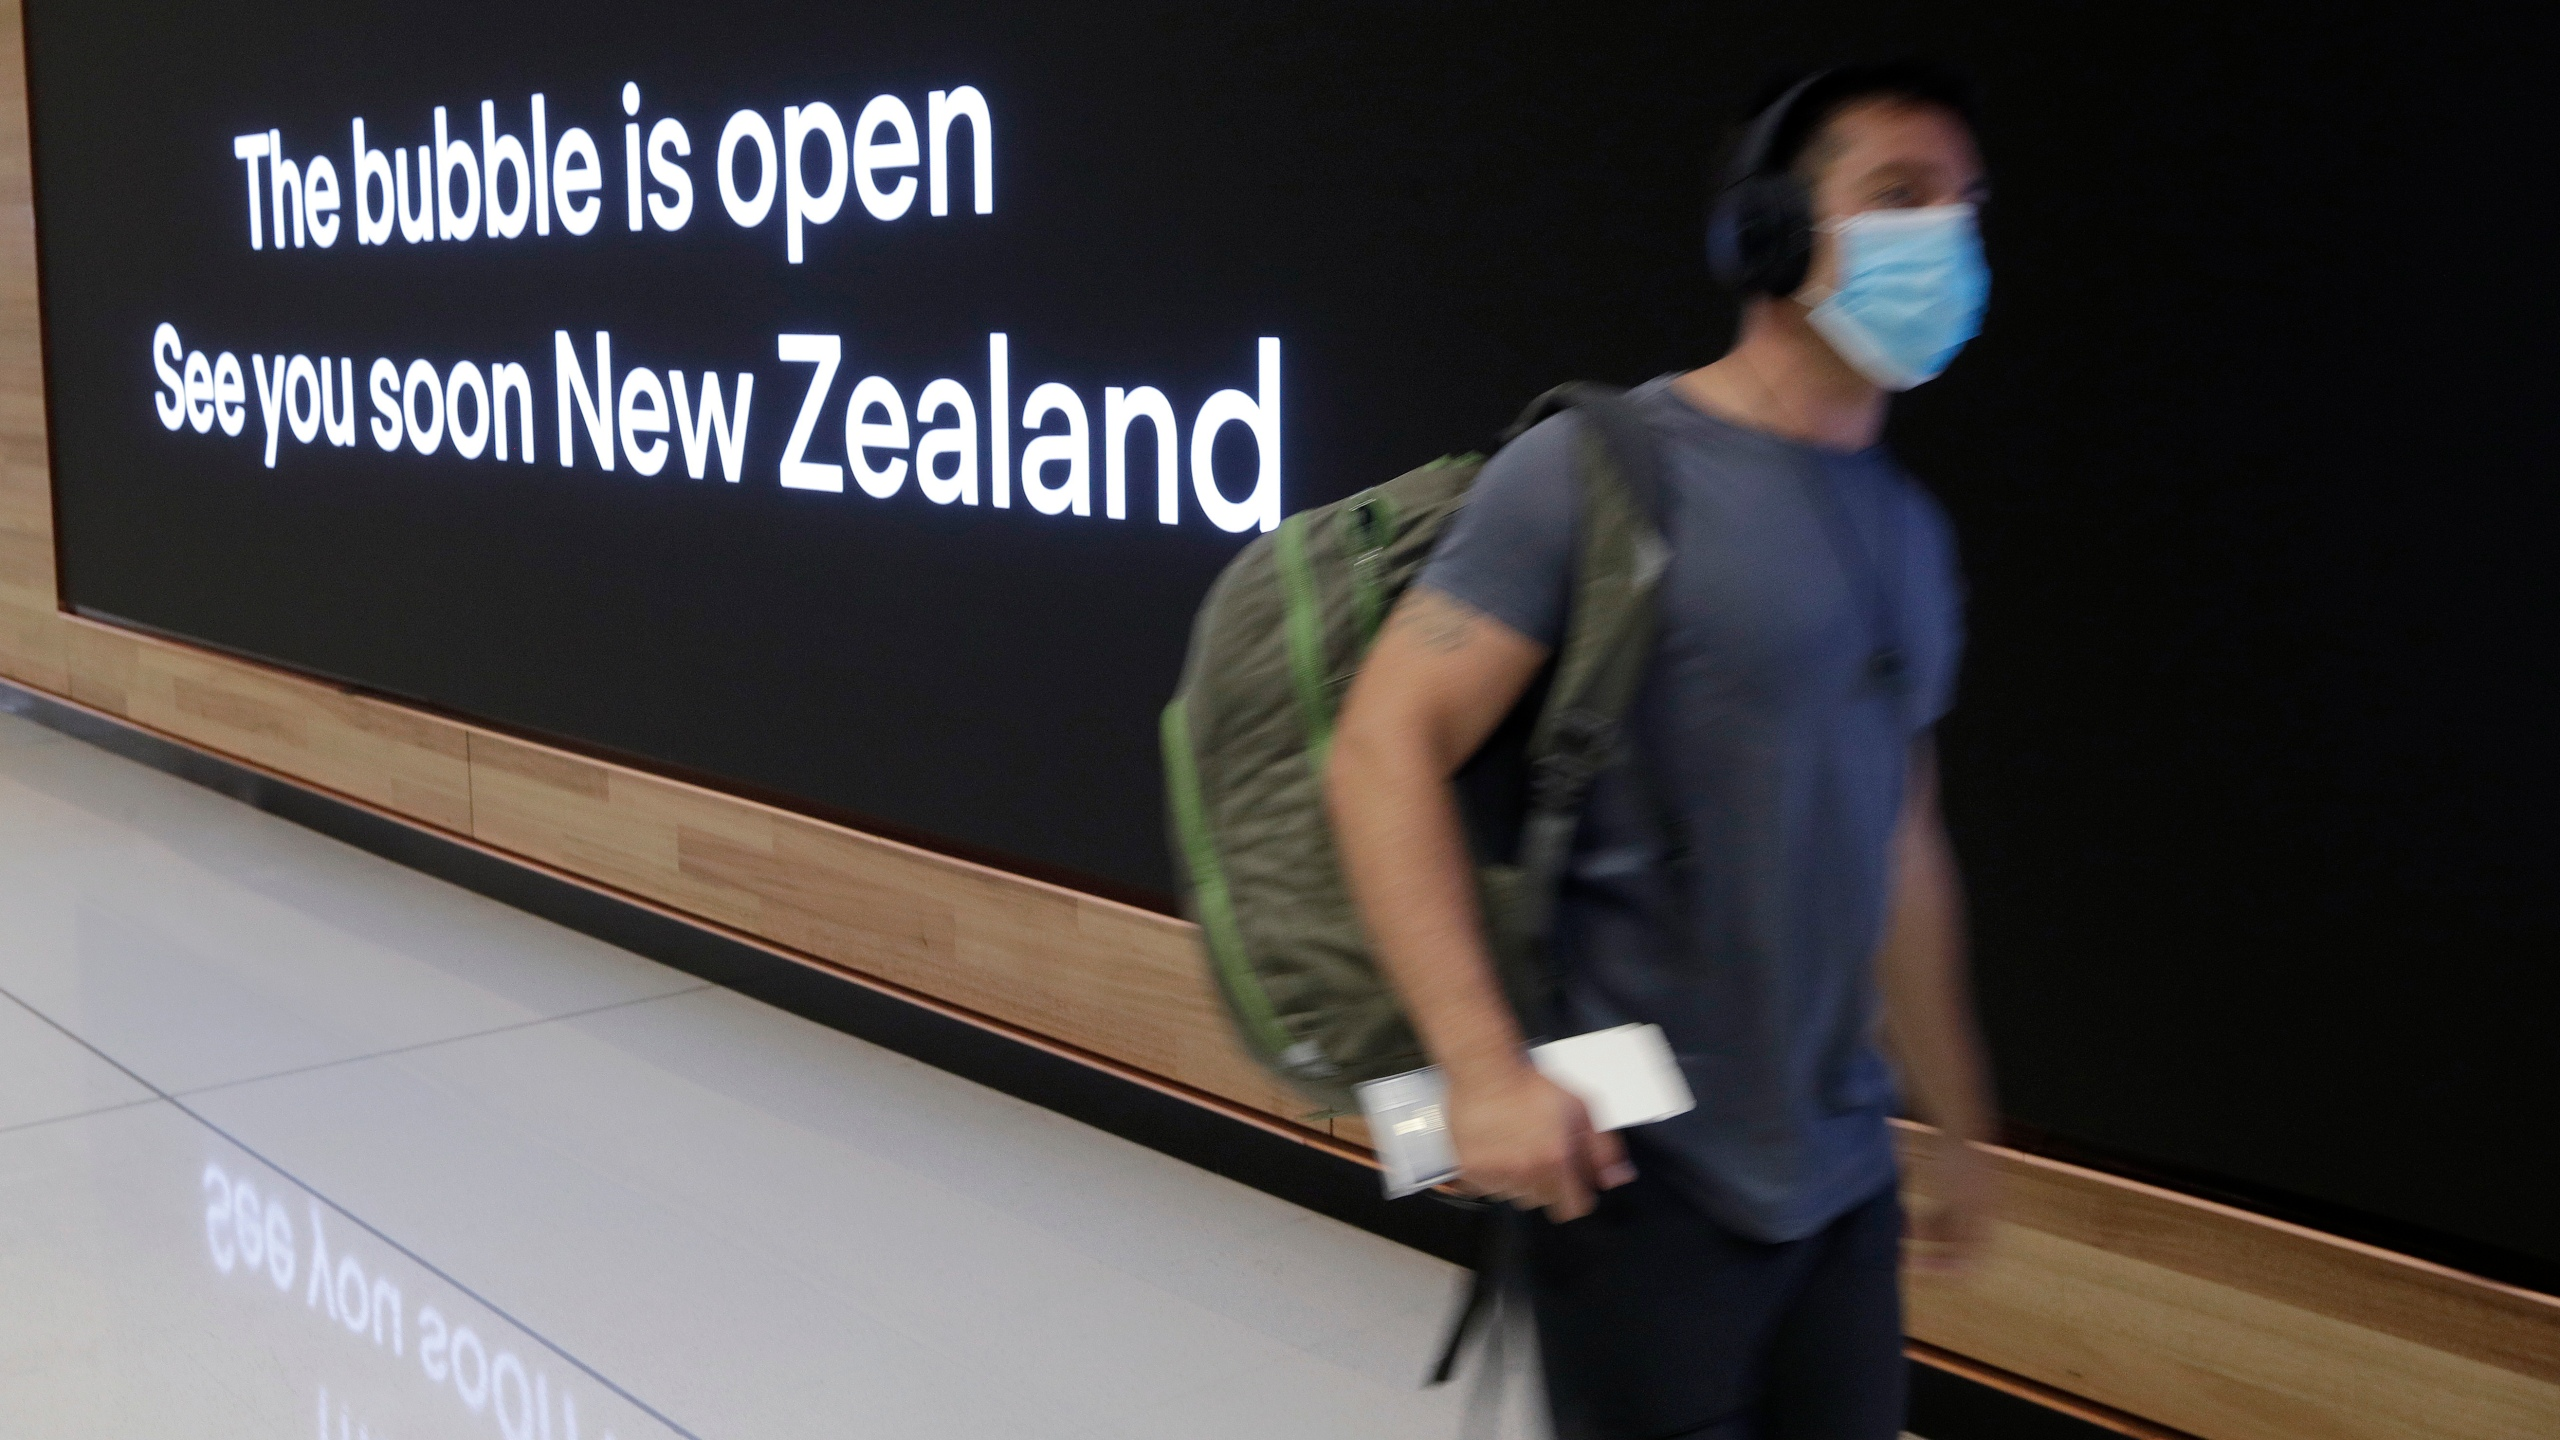 In this April 19, 2021, file photo a passenger travels through Sydney Airport, in Sydney, Australia. International tourists won't be welcomed back to Australia until next year, with the return of skilled migrants and students given higher priority, the prime minister said on Tuesday, Oct. 5, 2021. (AP Photo/Rick Rycroft, File)